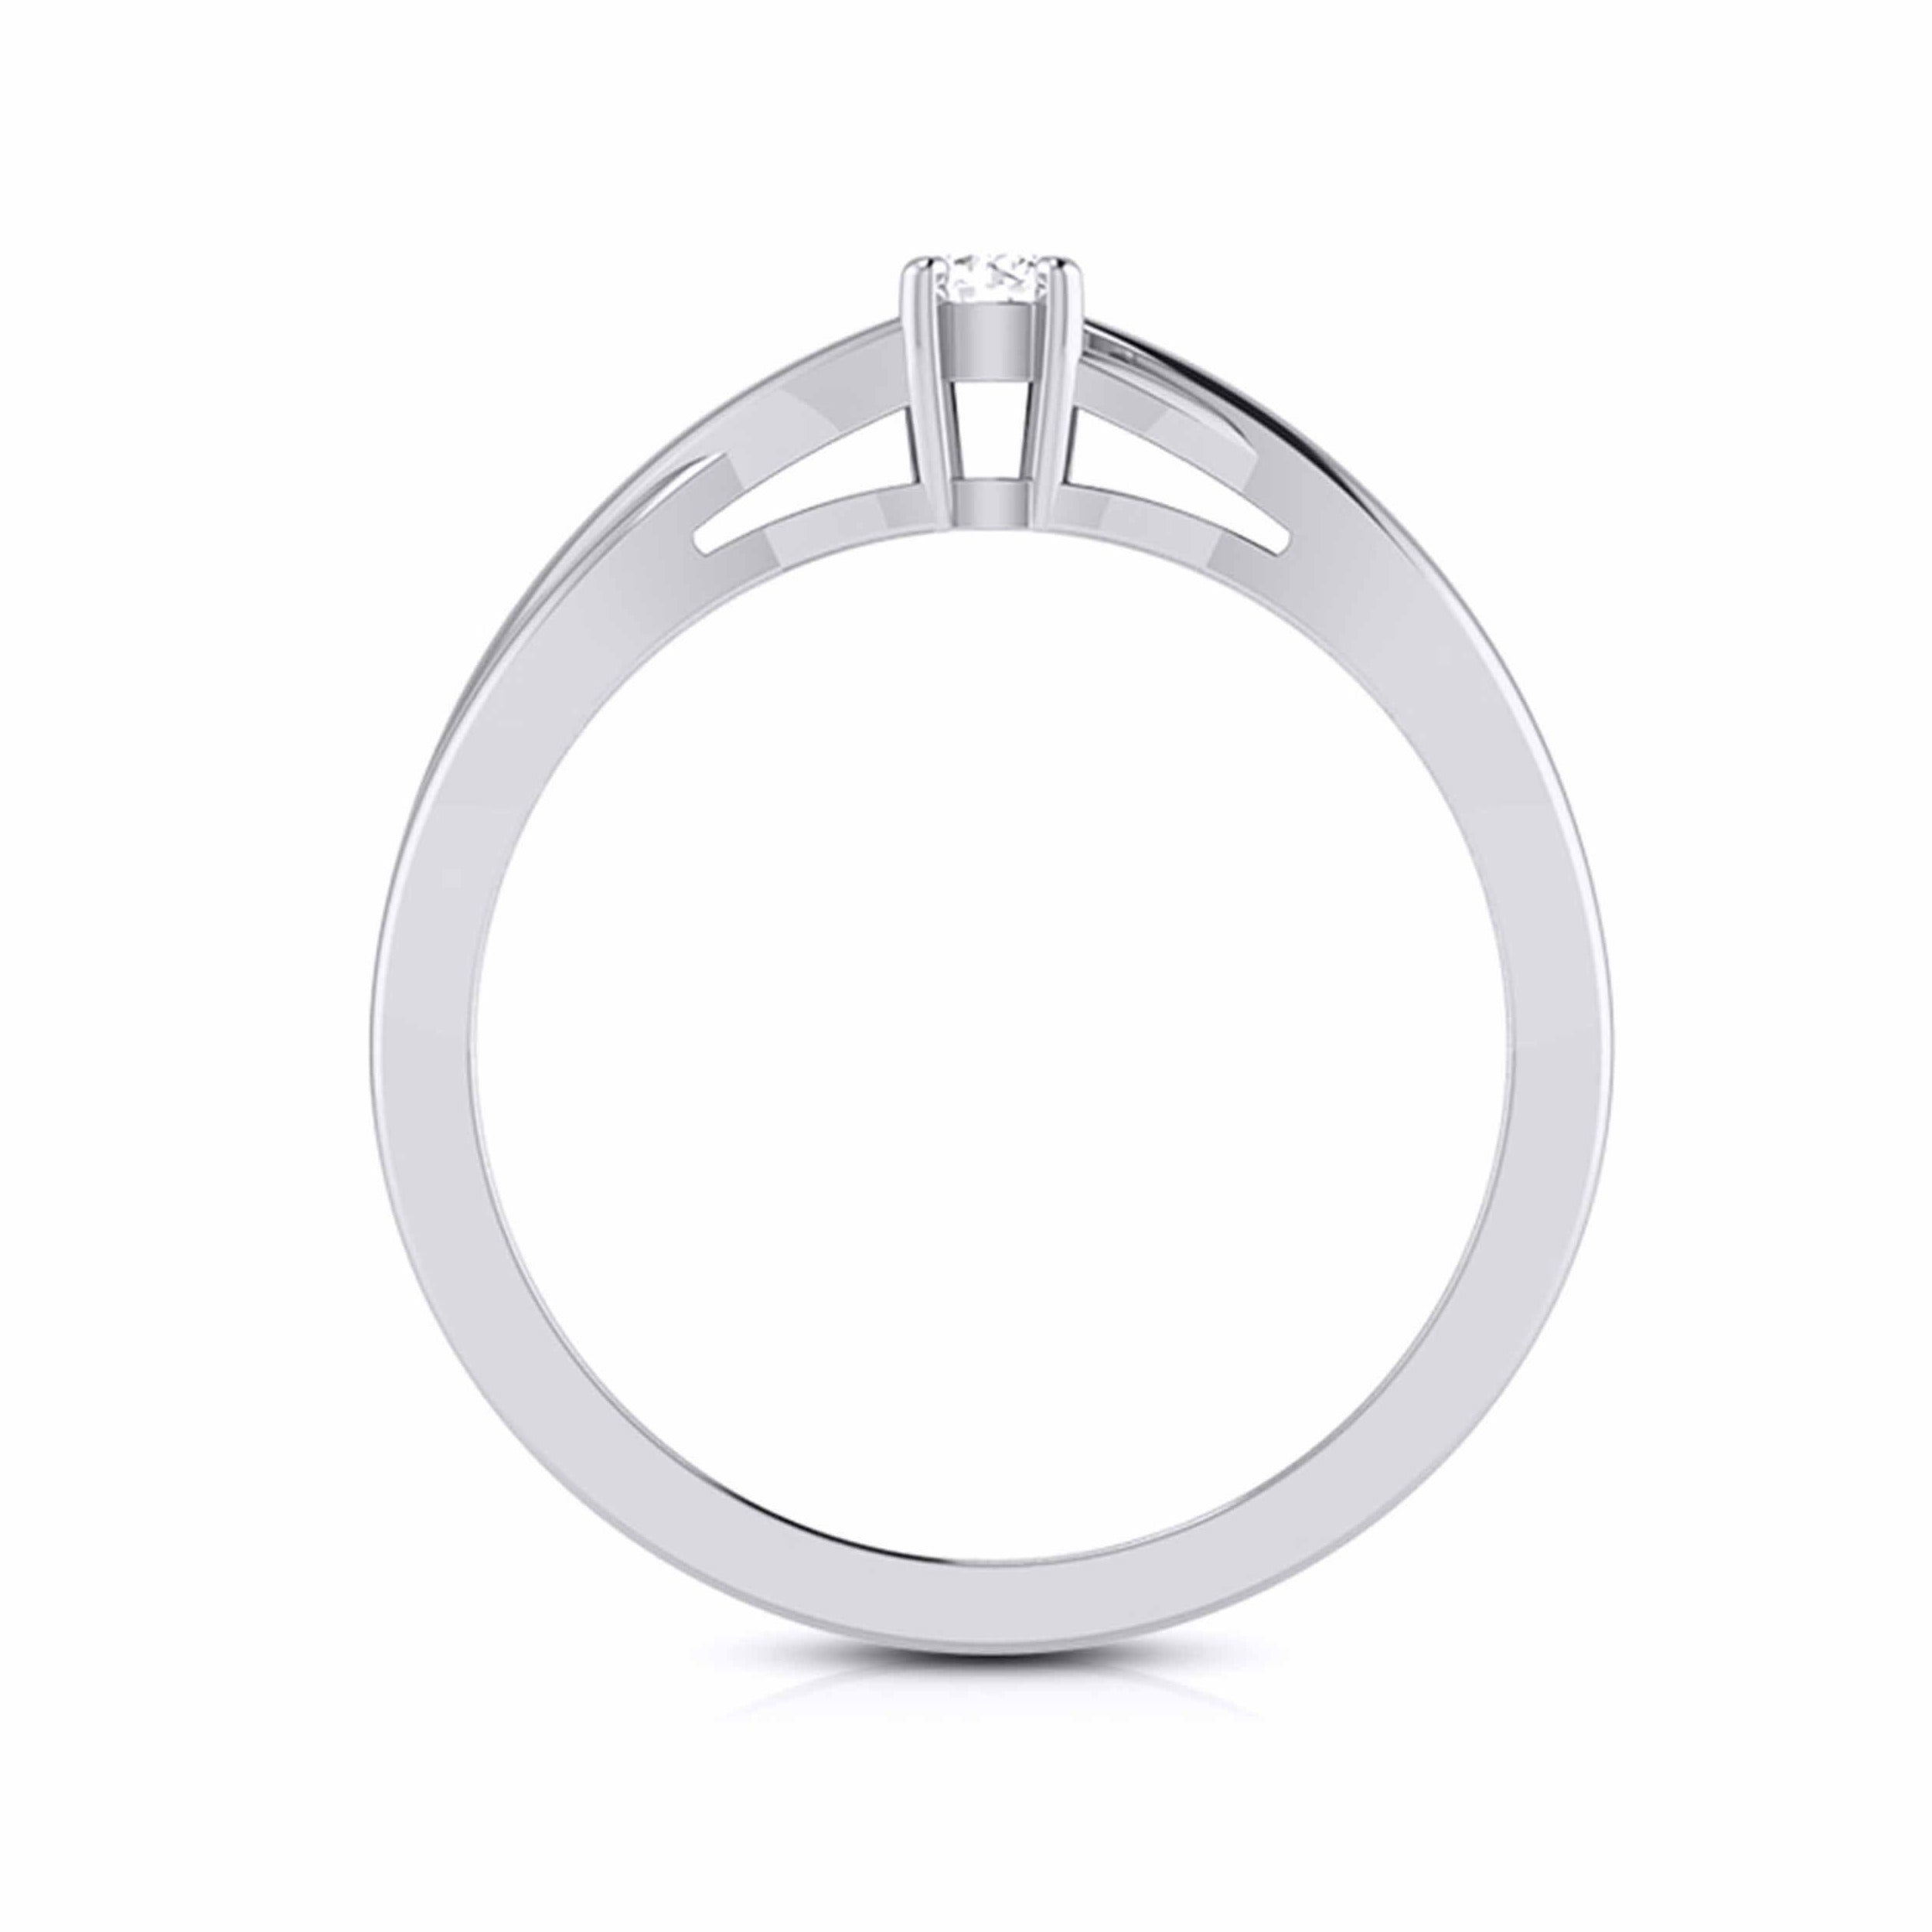 10-Pointer Platinum Solitaire Ring - Shank with a Twist JL PT G-115